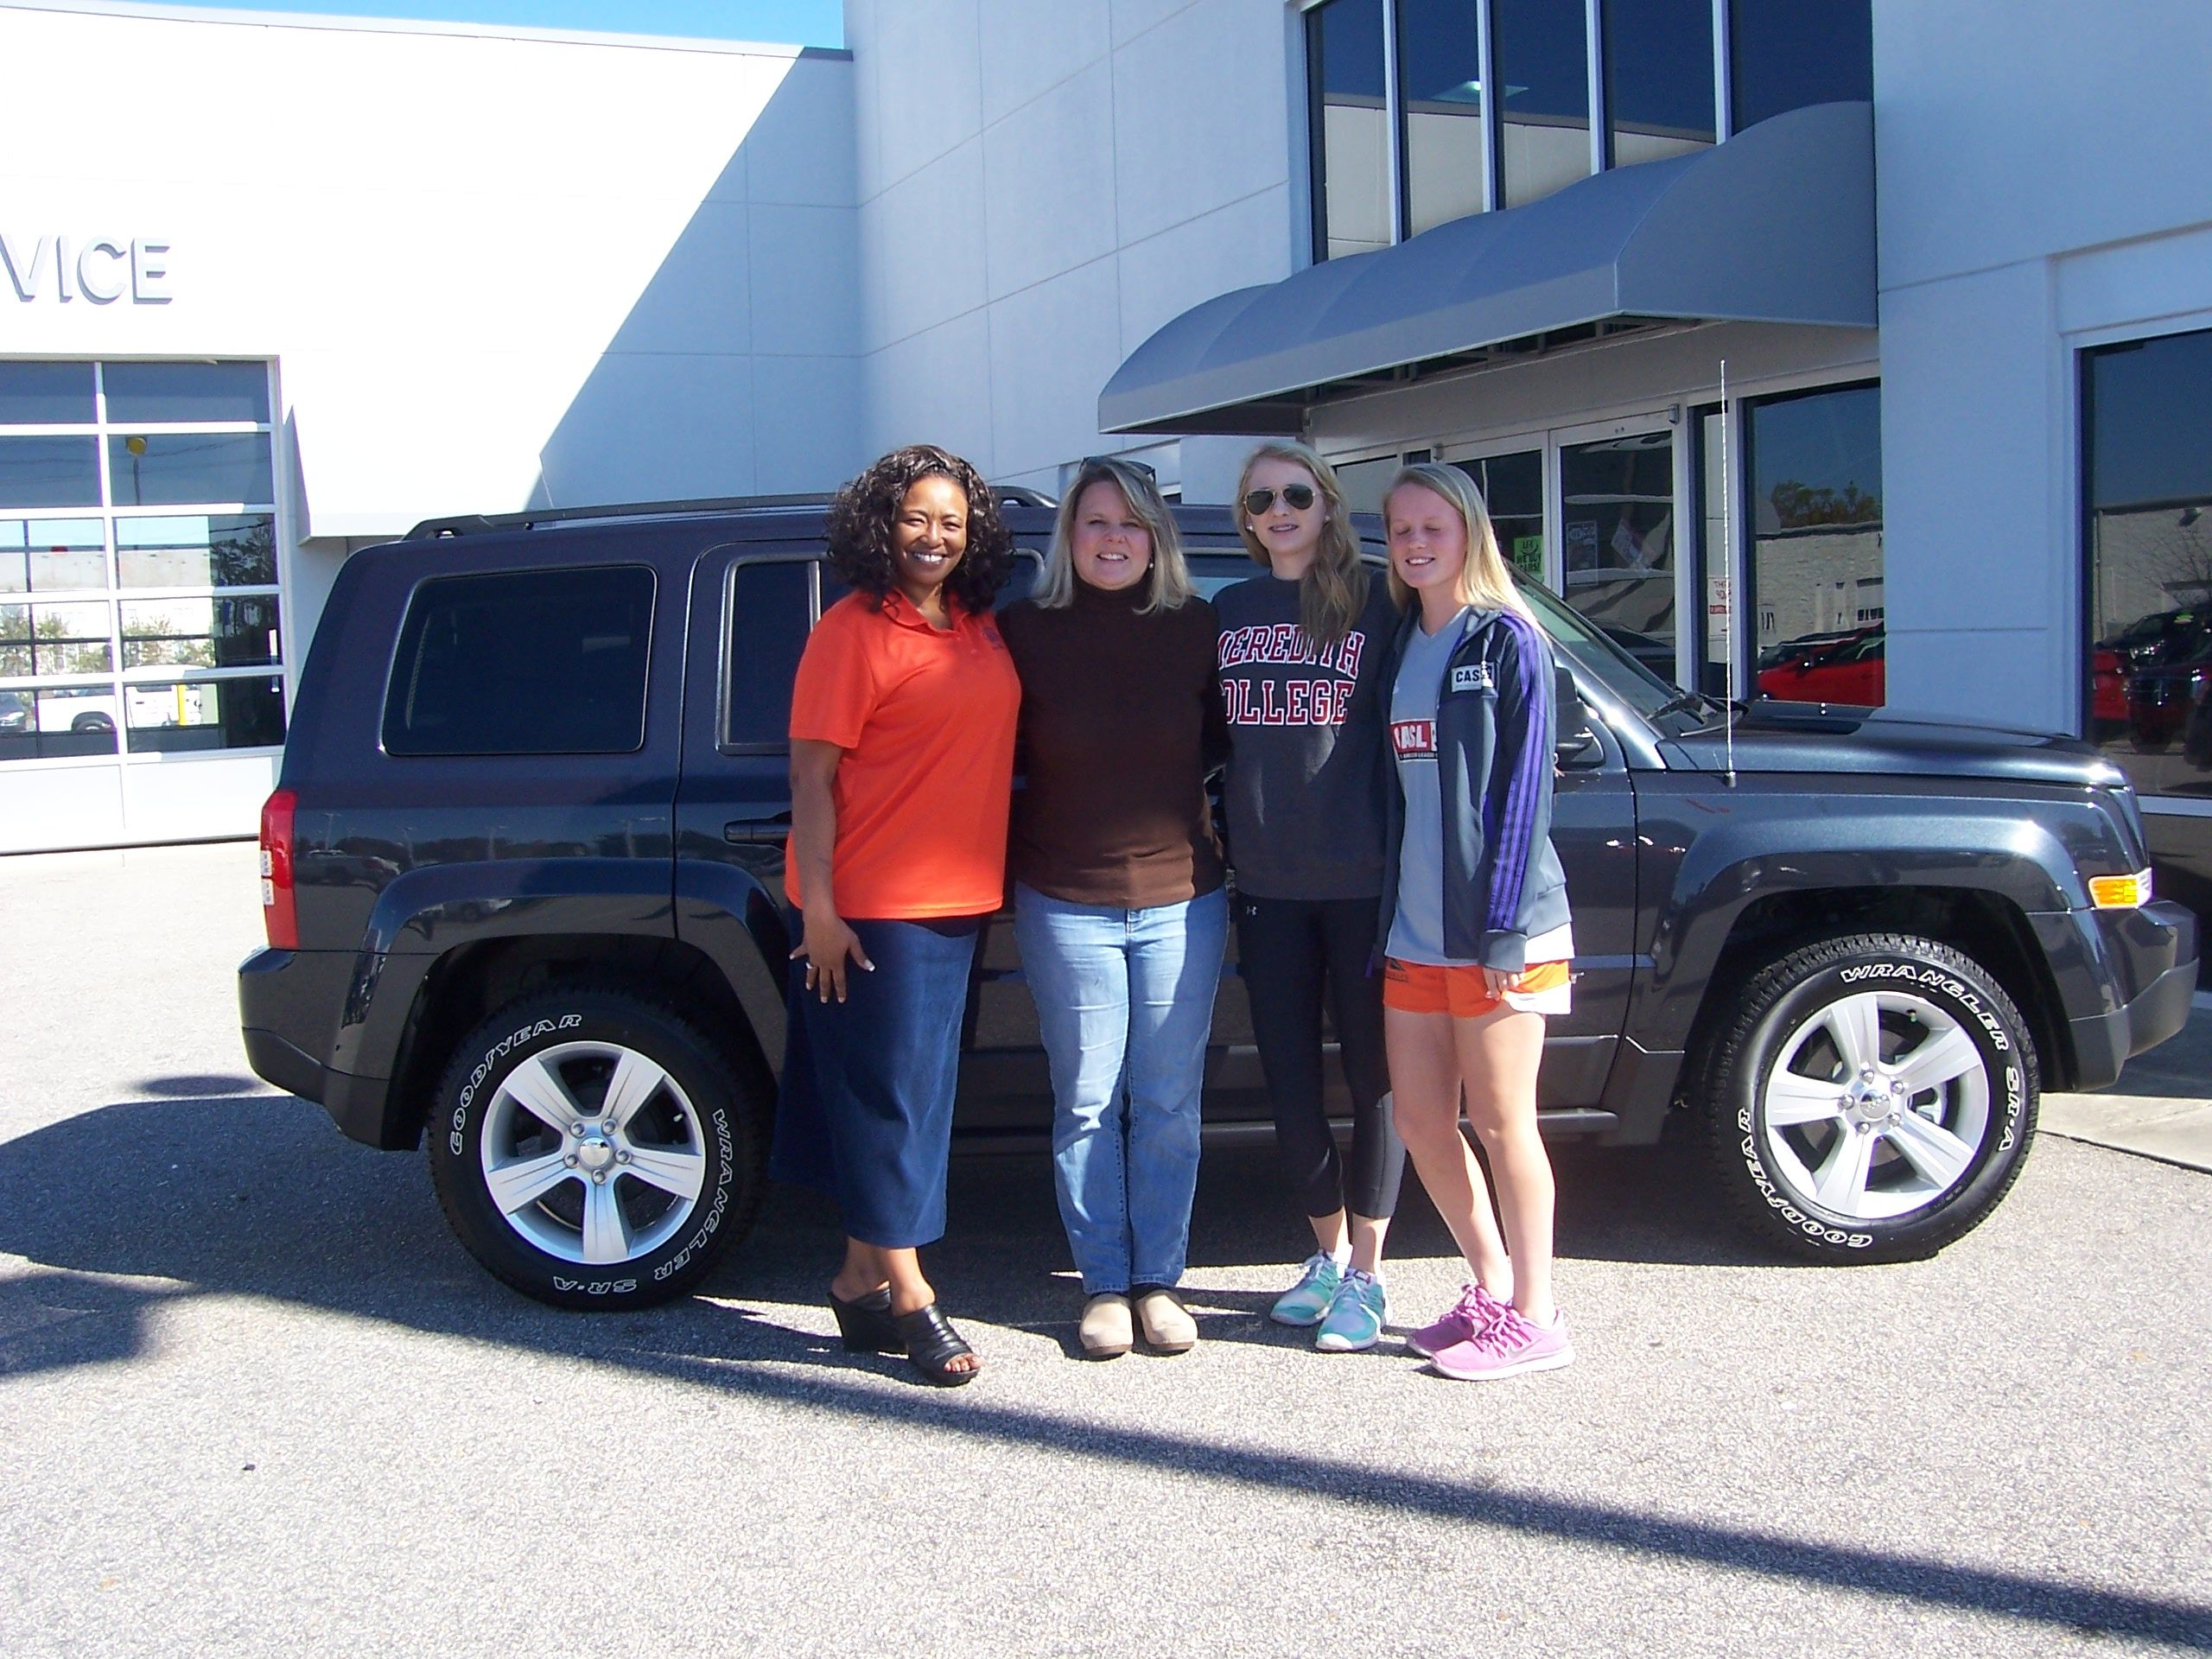 Carol And Her Family From Wilson Nc Are Ready To Hit The Open Road With Their Brand New 2014 Jeep Patriot Their Sales Pers 2014 Jeep Patriot Jeep Patriot Jeep